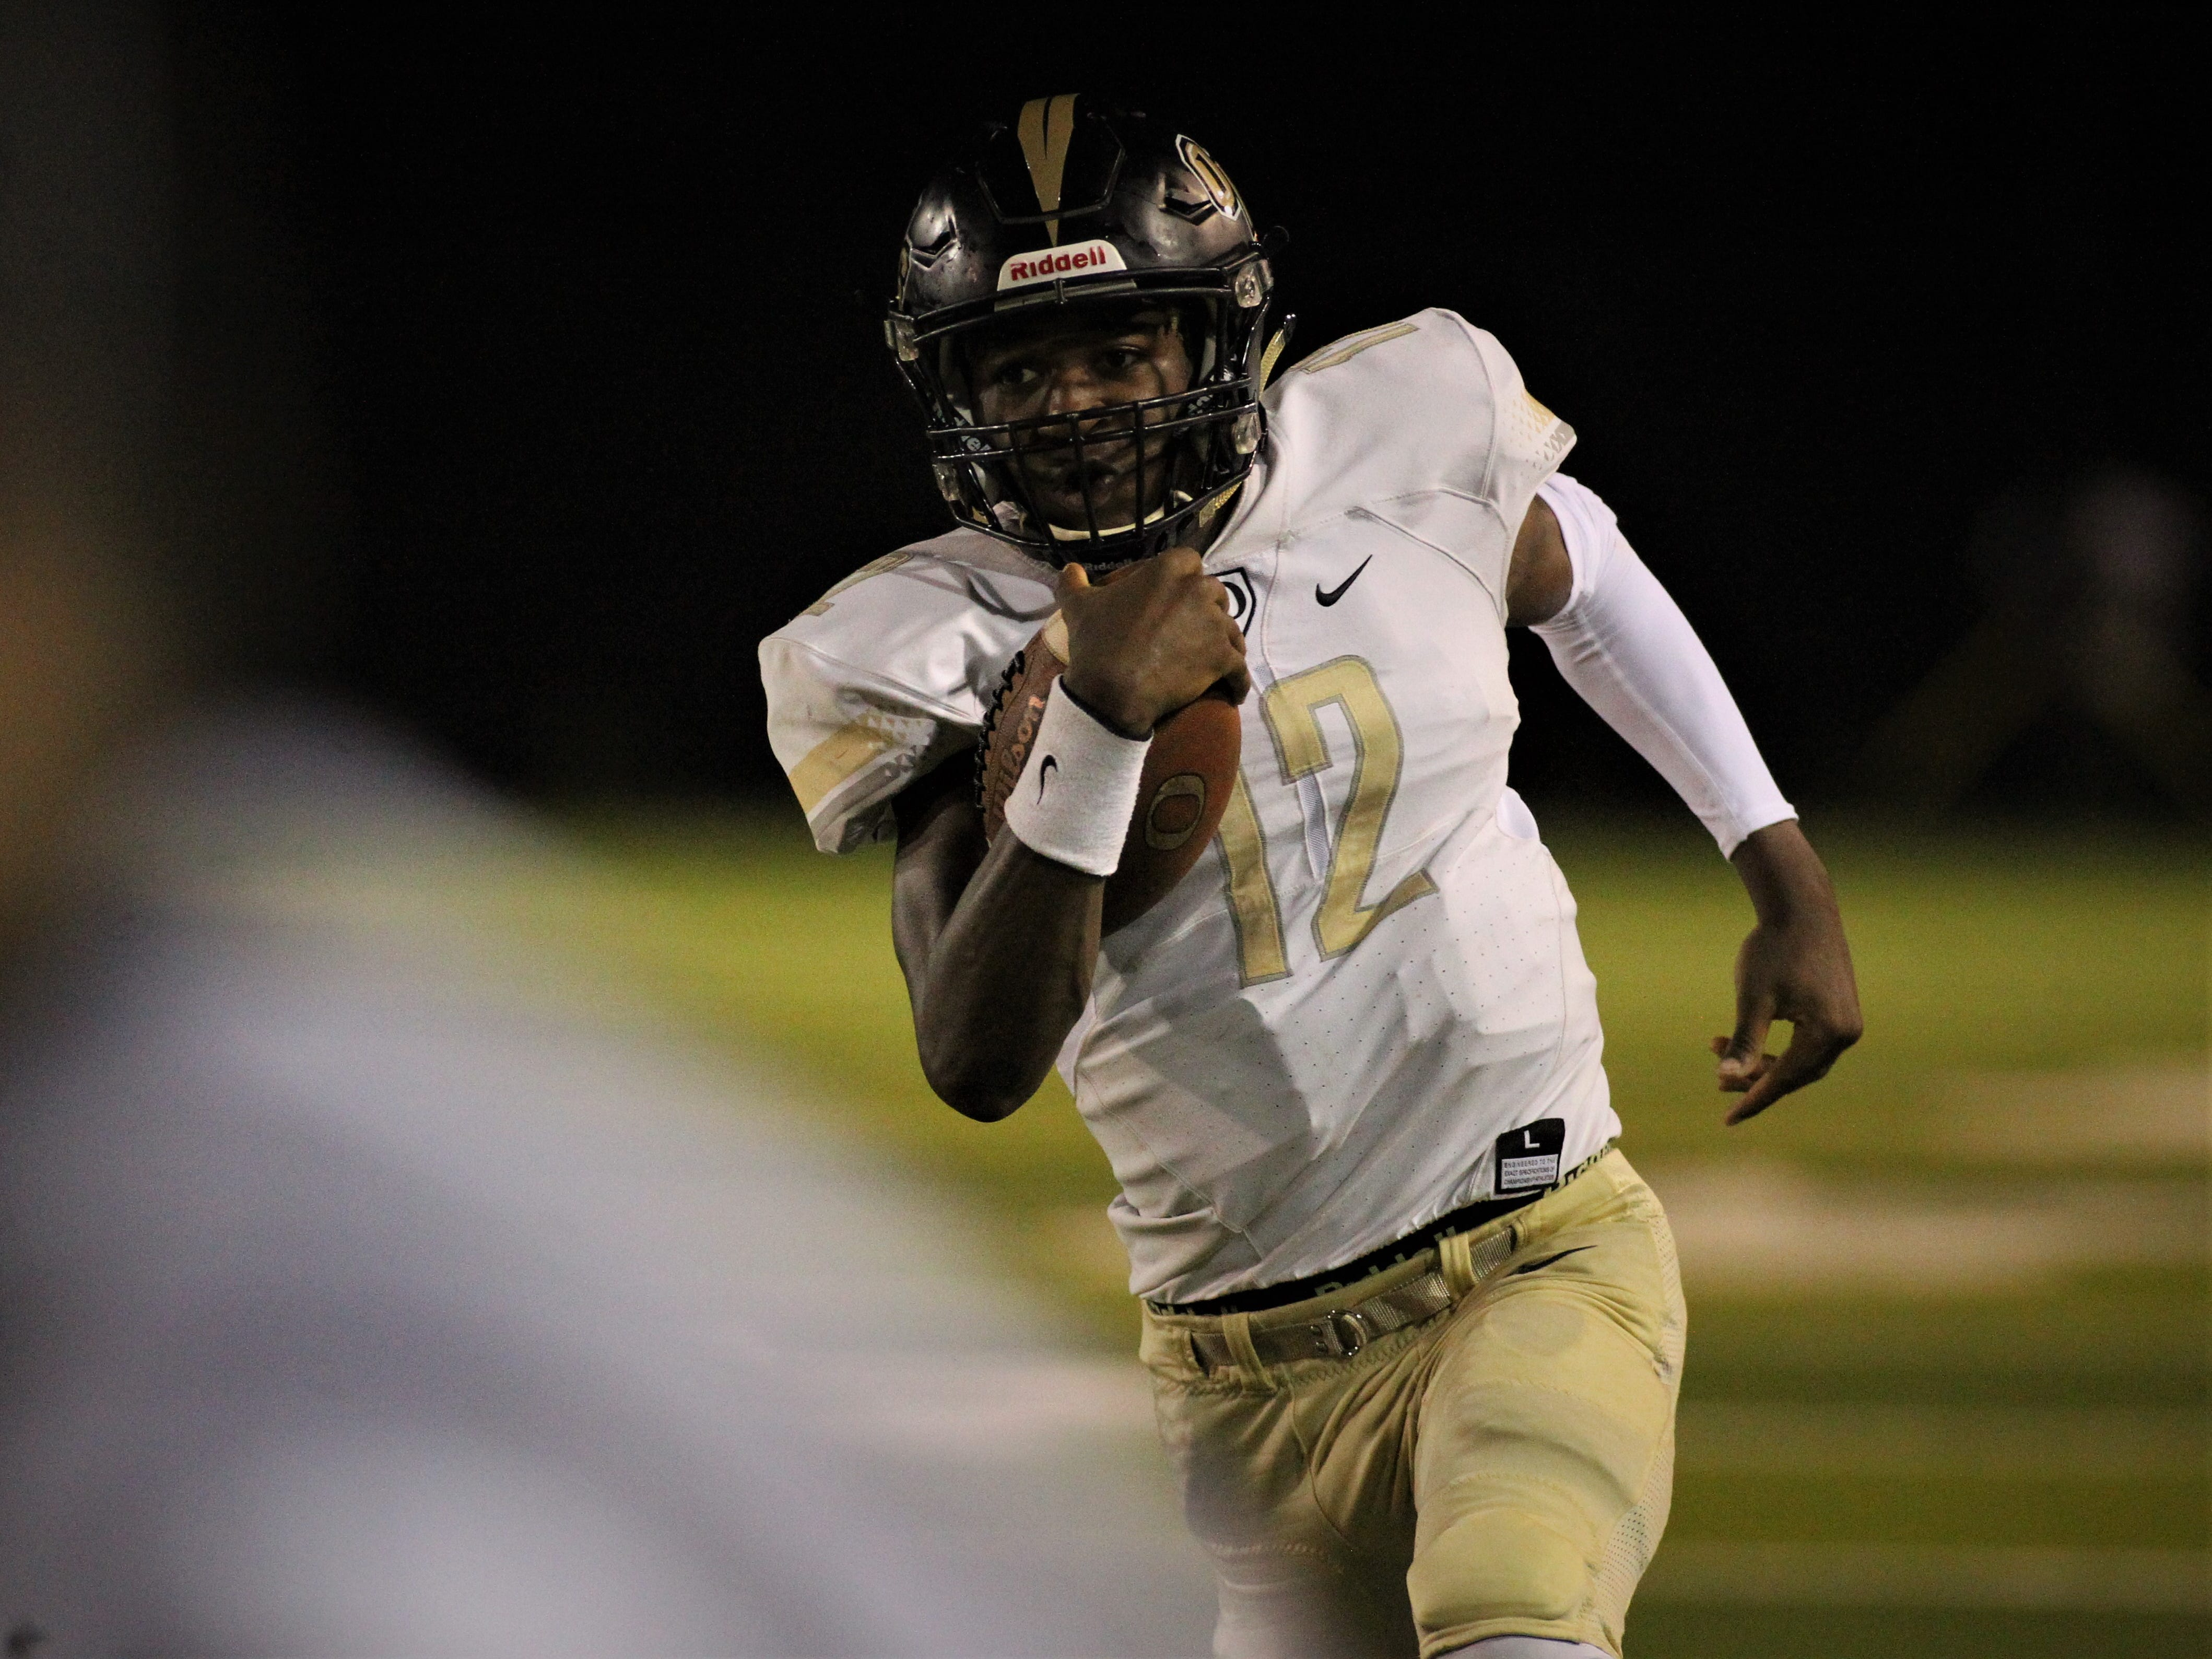 Oakleaf quarterback Walter Simmons III runs for yards as Lincoln beat Oakleaf 38-31 in three overtime periods during a Region 1-7A quarterfinal Thursday night at Gene Cox Stadium.